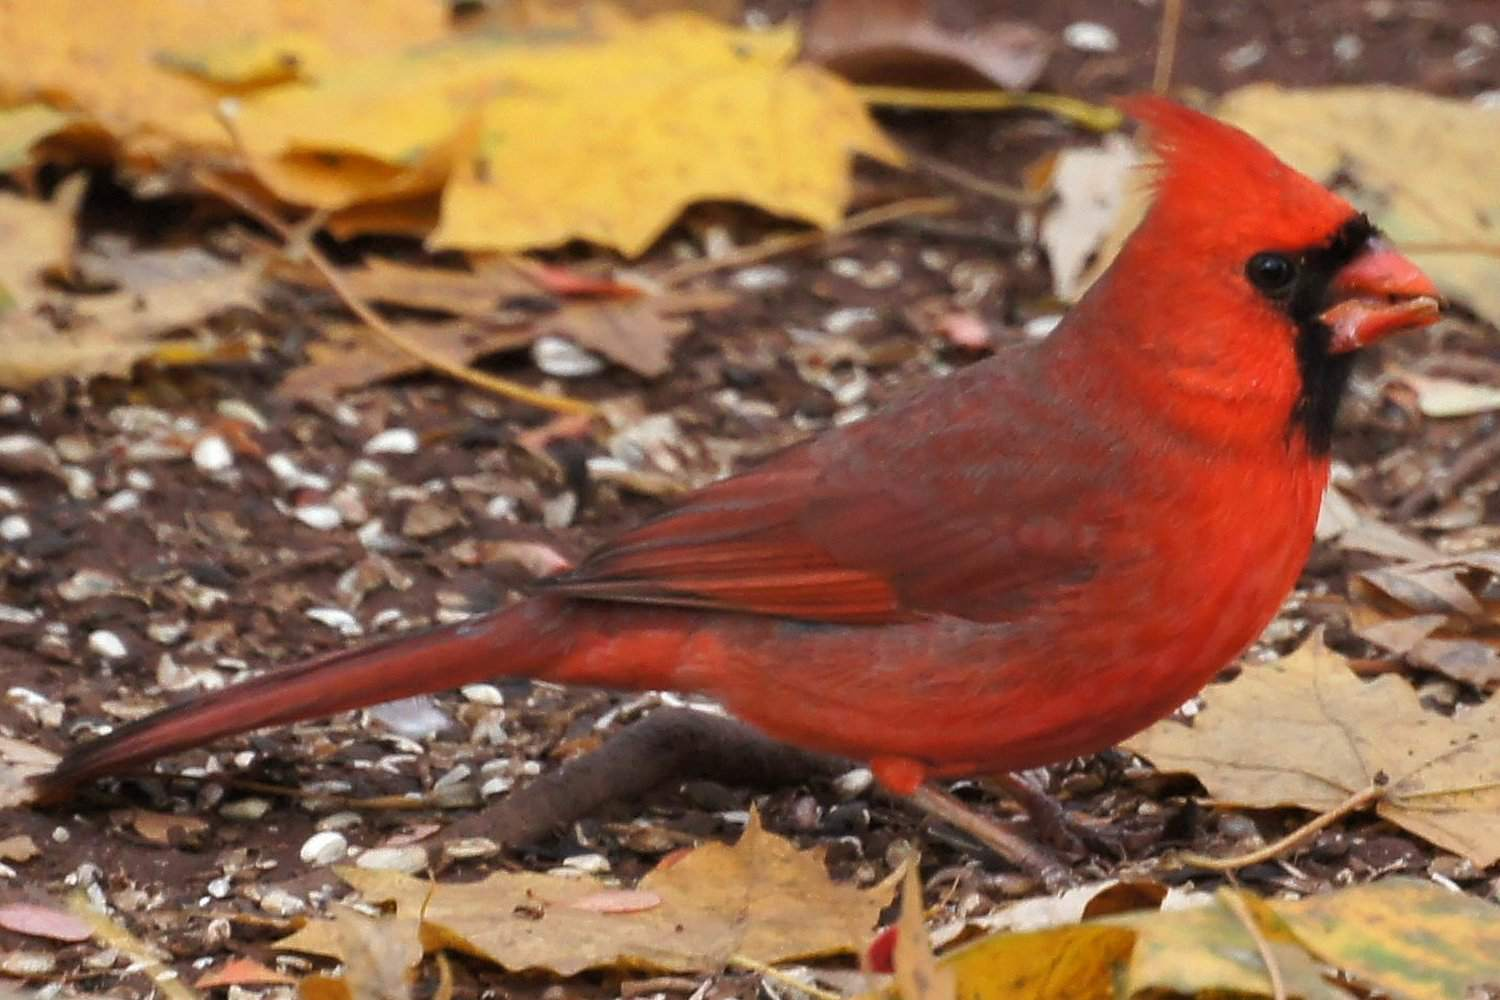 Northern Cardinal, the state bird of North Carolina, standing near leaves on the ground.